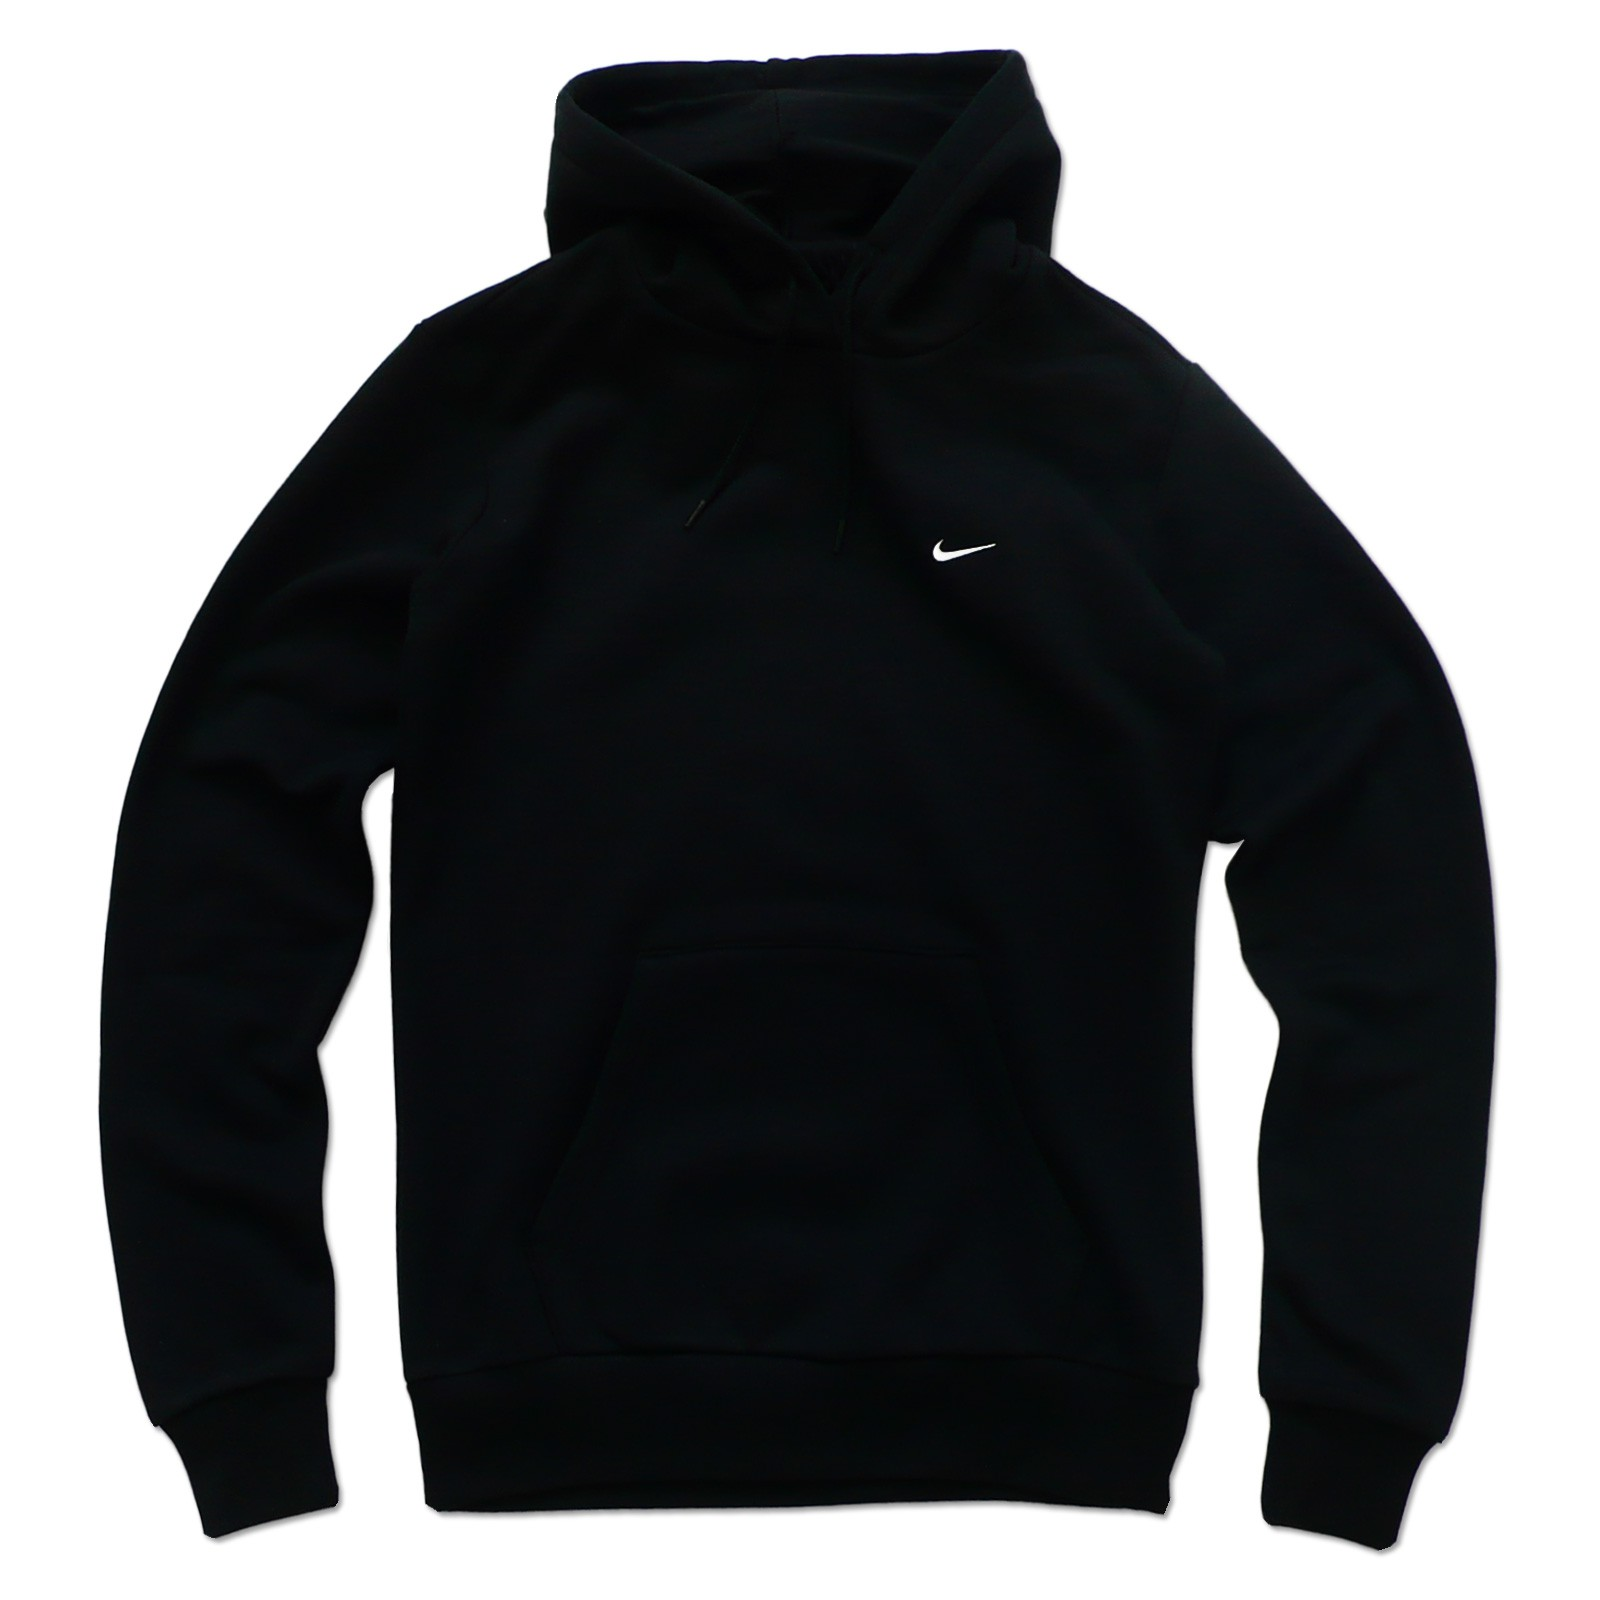 nike athletic damen hoodie kapuzenpullover sweatshirt schwarz neu s xl ebay. Black Bedroom Furniture Sets. Home Design Ideas